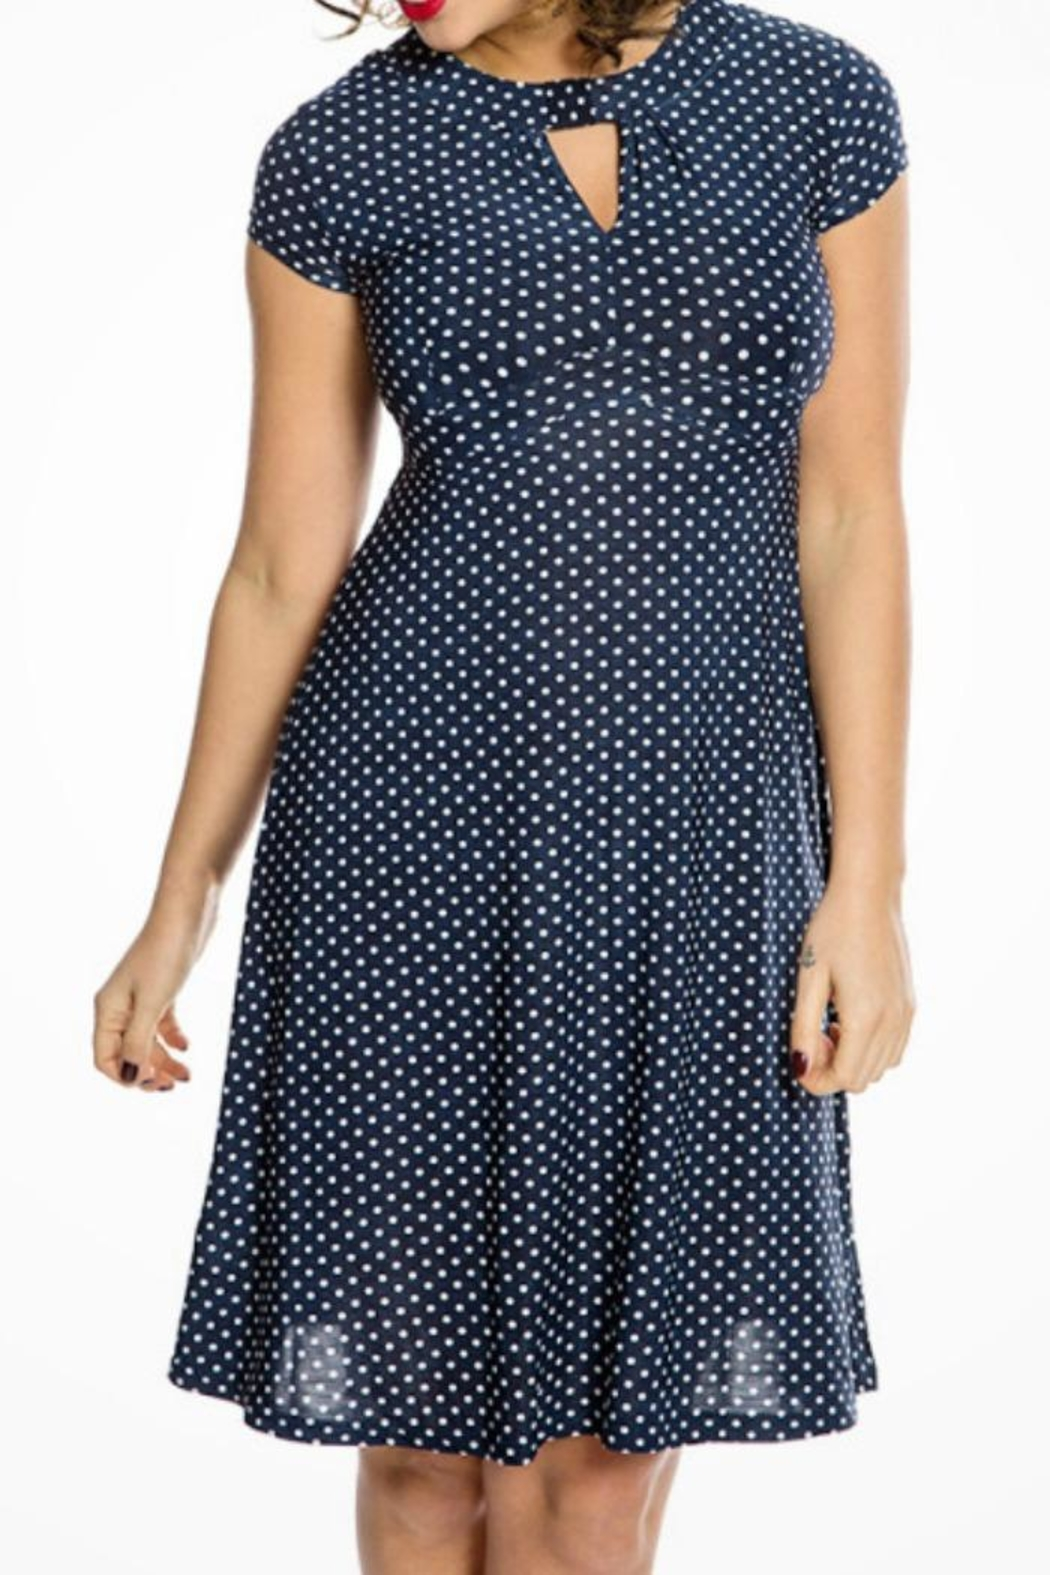 44fae7896f0e8 Lindy Bop Navy Polkadot Dress from Louisville by Block Party ...